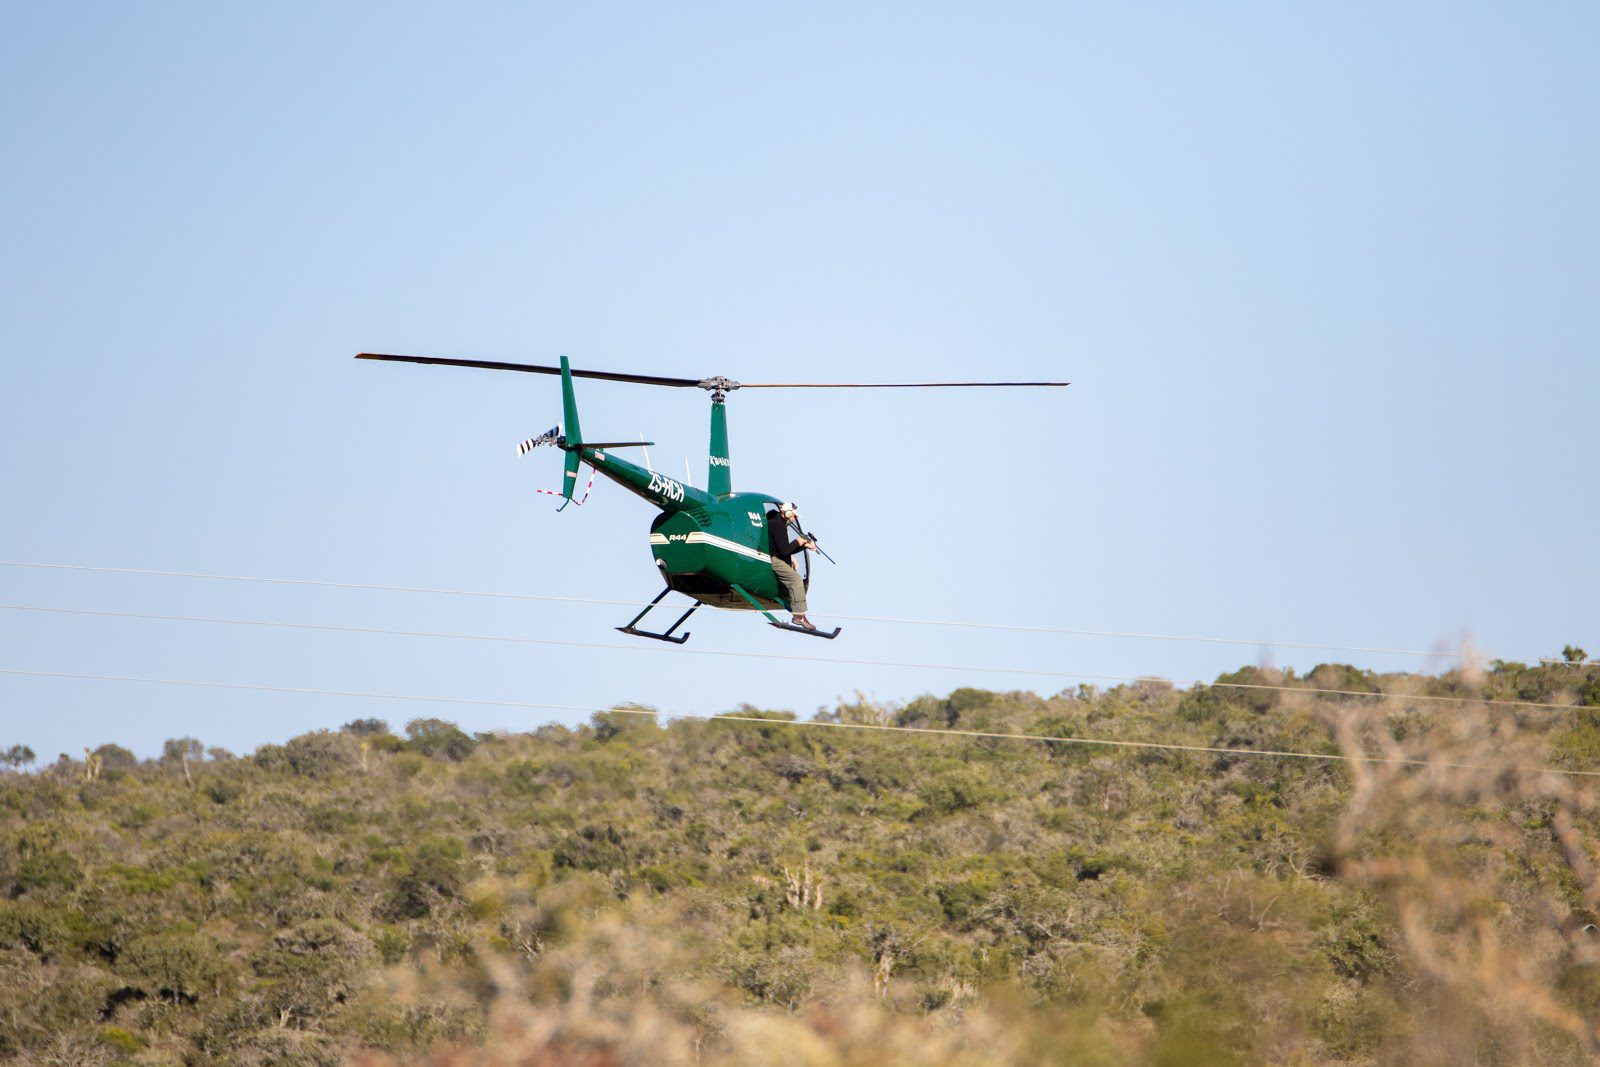 helicopter rhino darting kwandwe